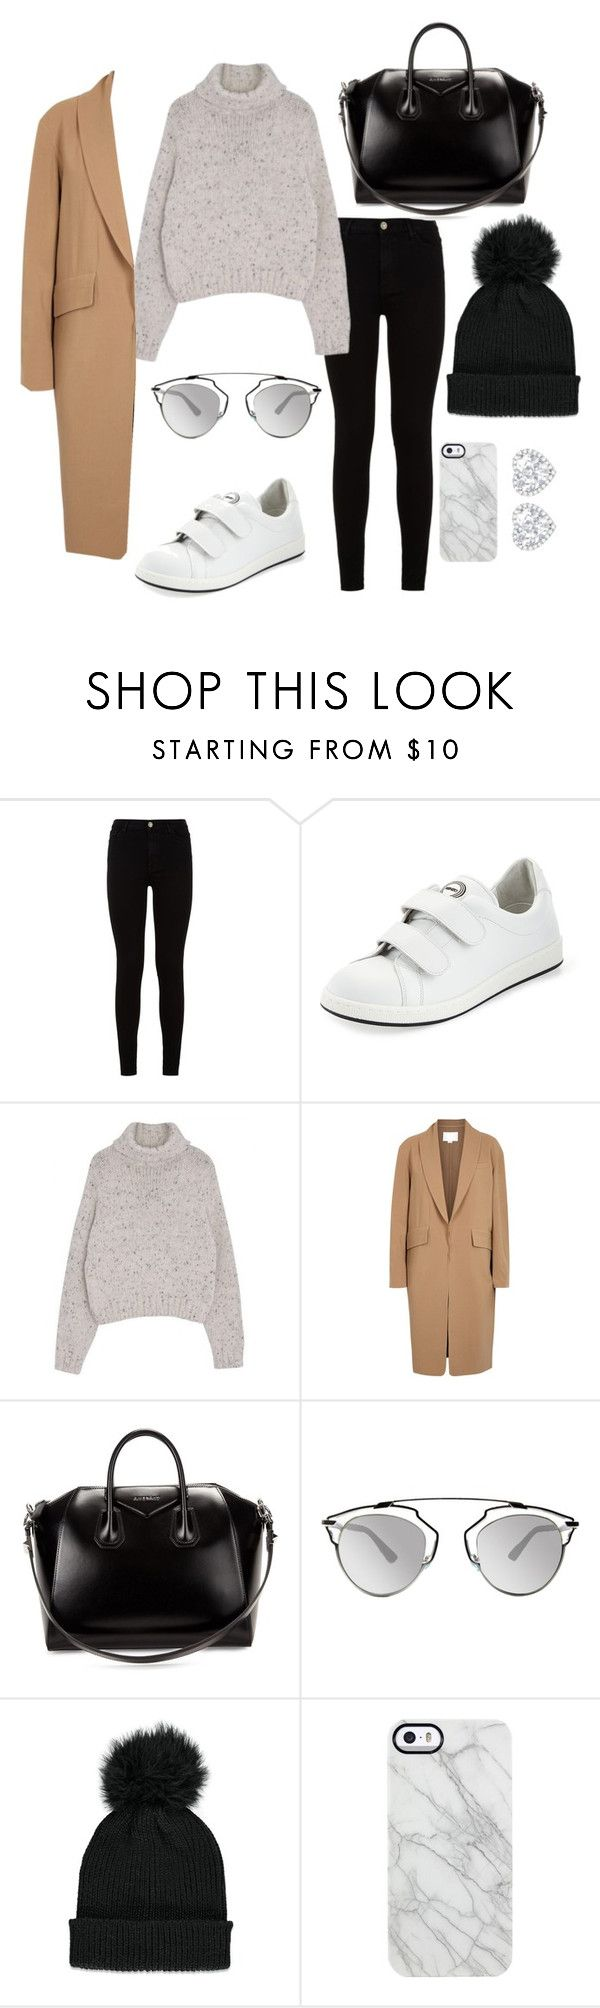 """Blogger"" by thais-derjangocyan on Polyvore featuring 7 For All Mankind, Kenzo, Alexander Wang, Givenchy, Christian Dior, Forever 21, Uncommon and Kiki mcdonough"